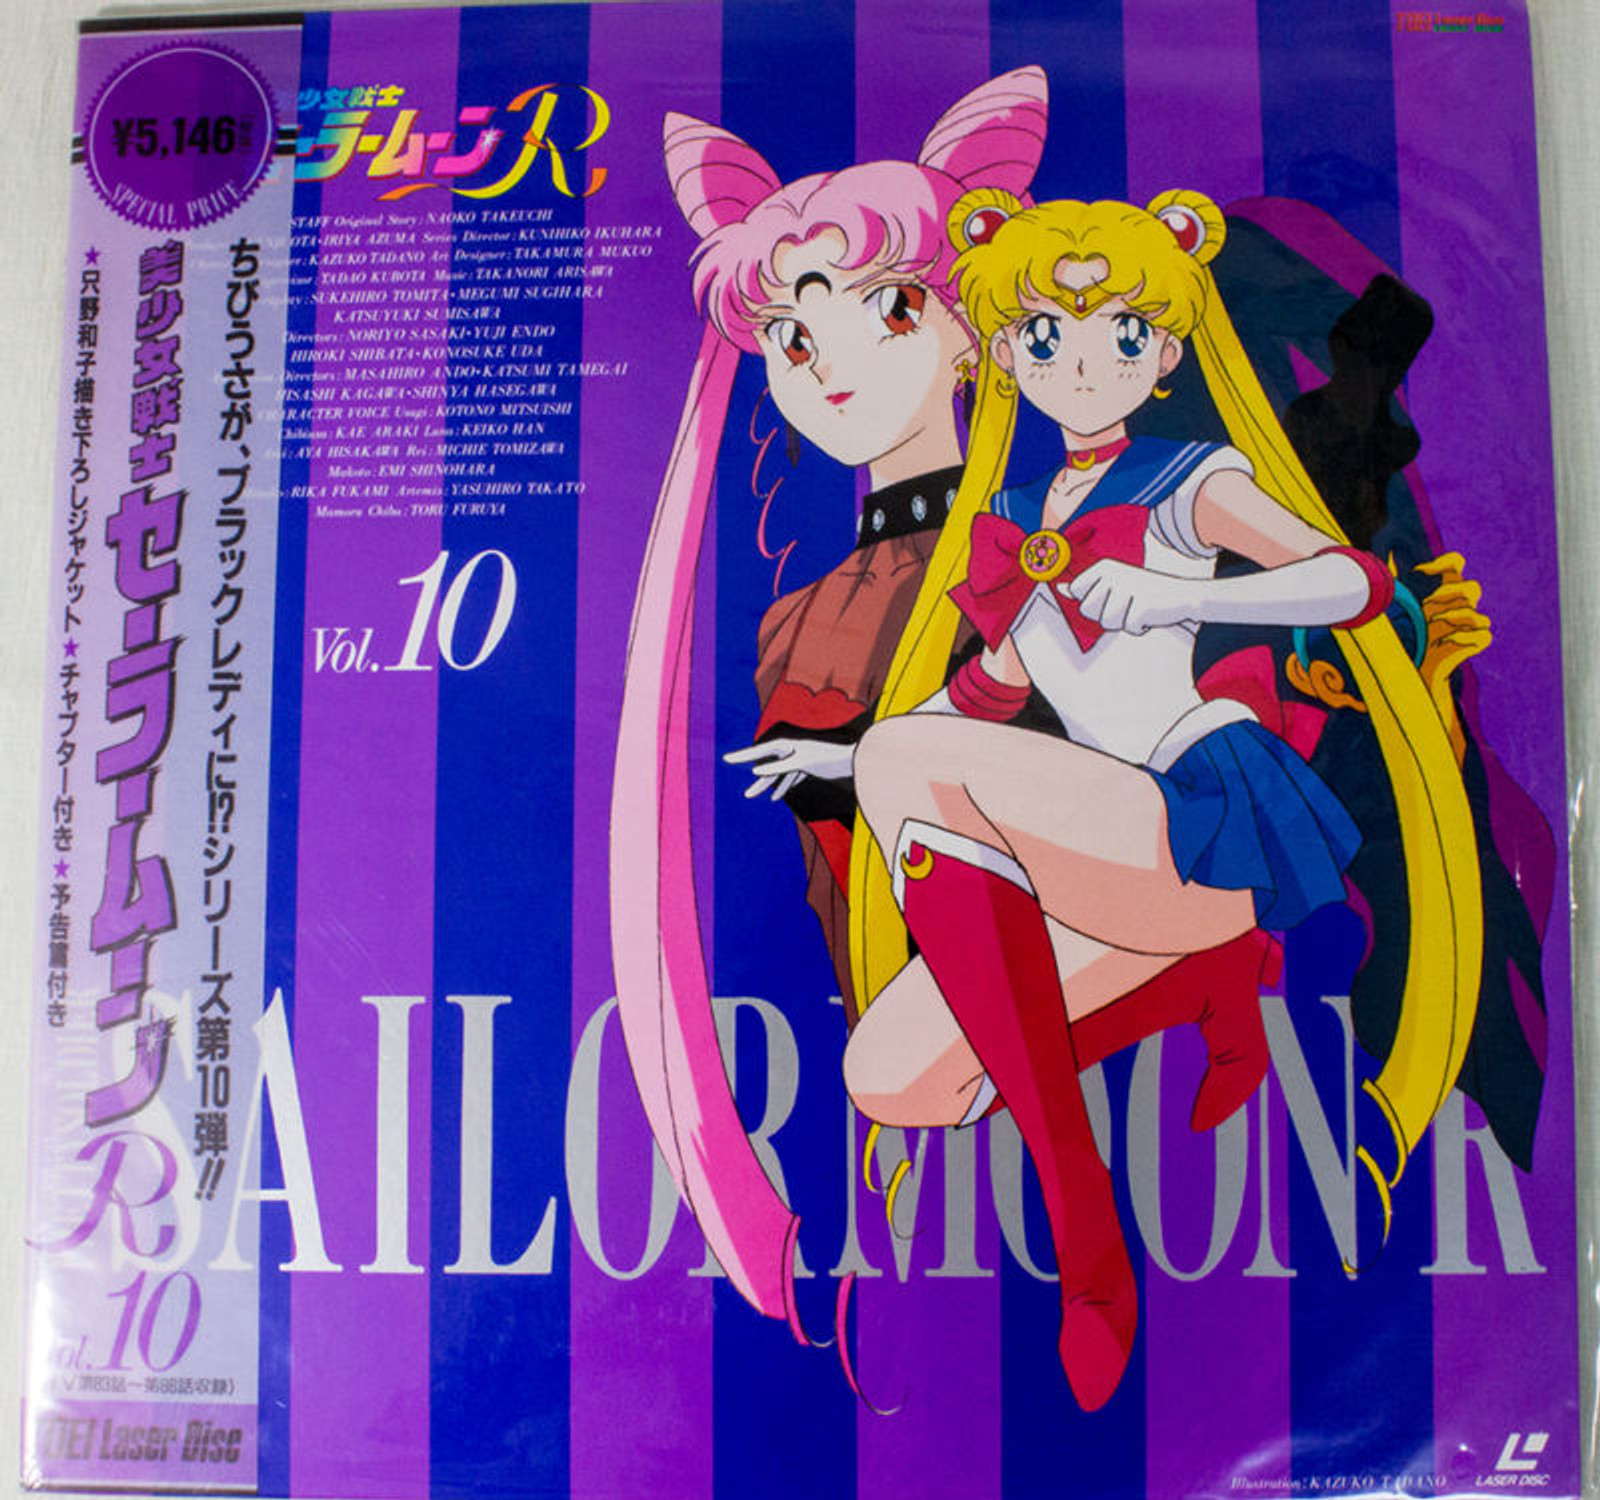 Sailor Moon R Vol.10 Laser Disc LD  JAPAN ANIME MANGA